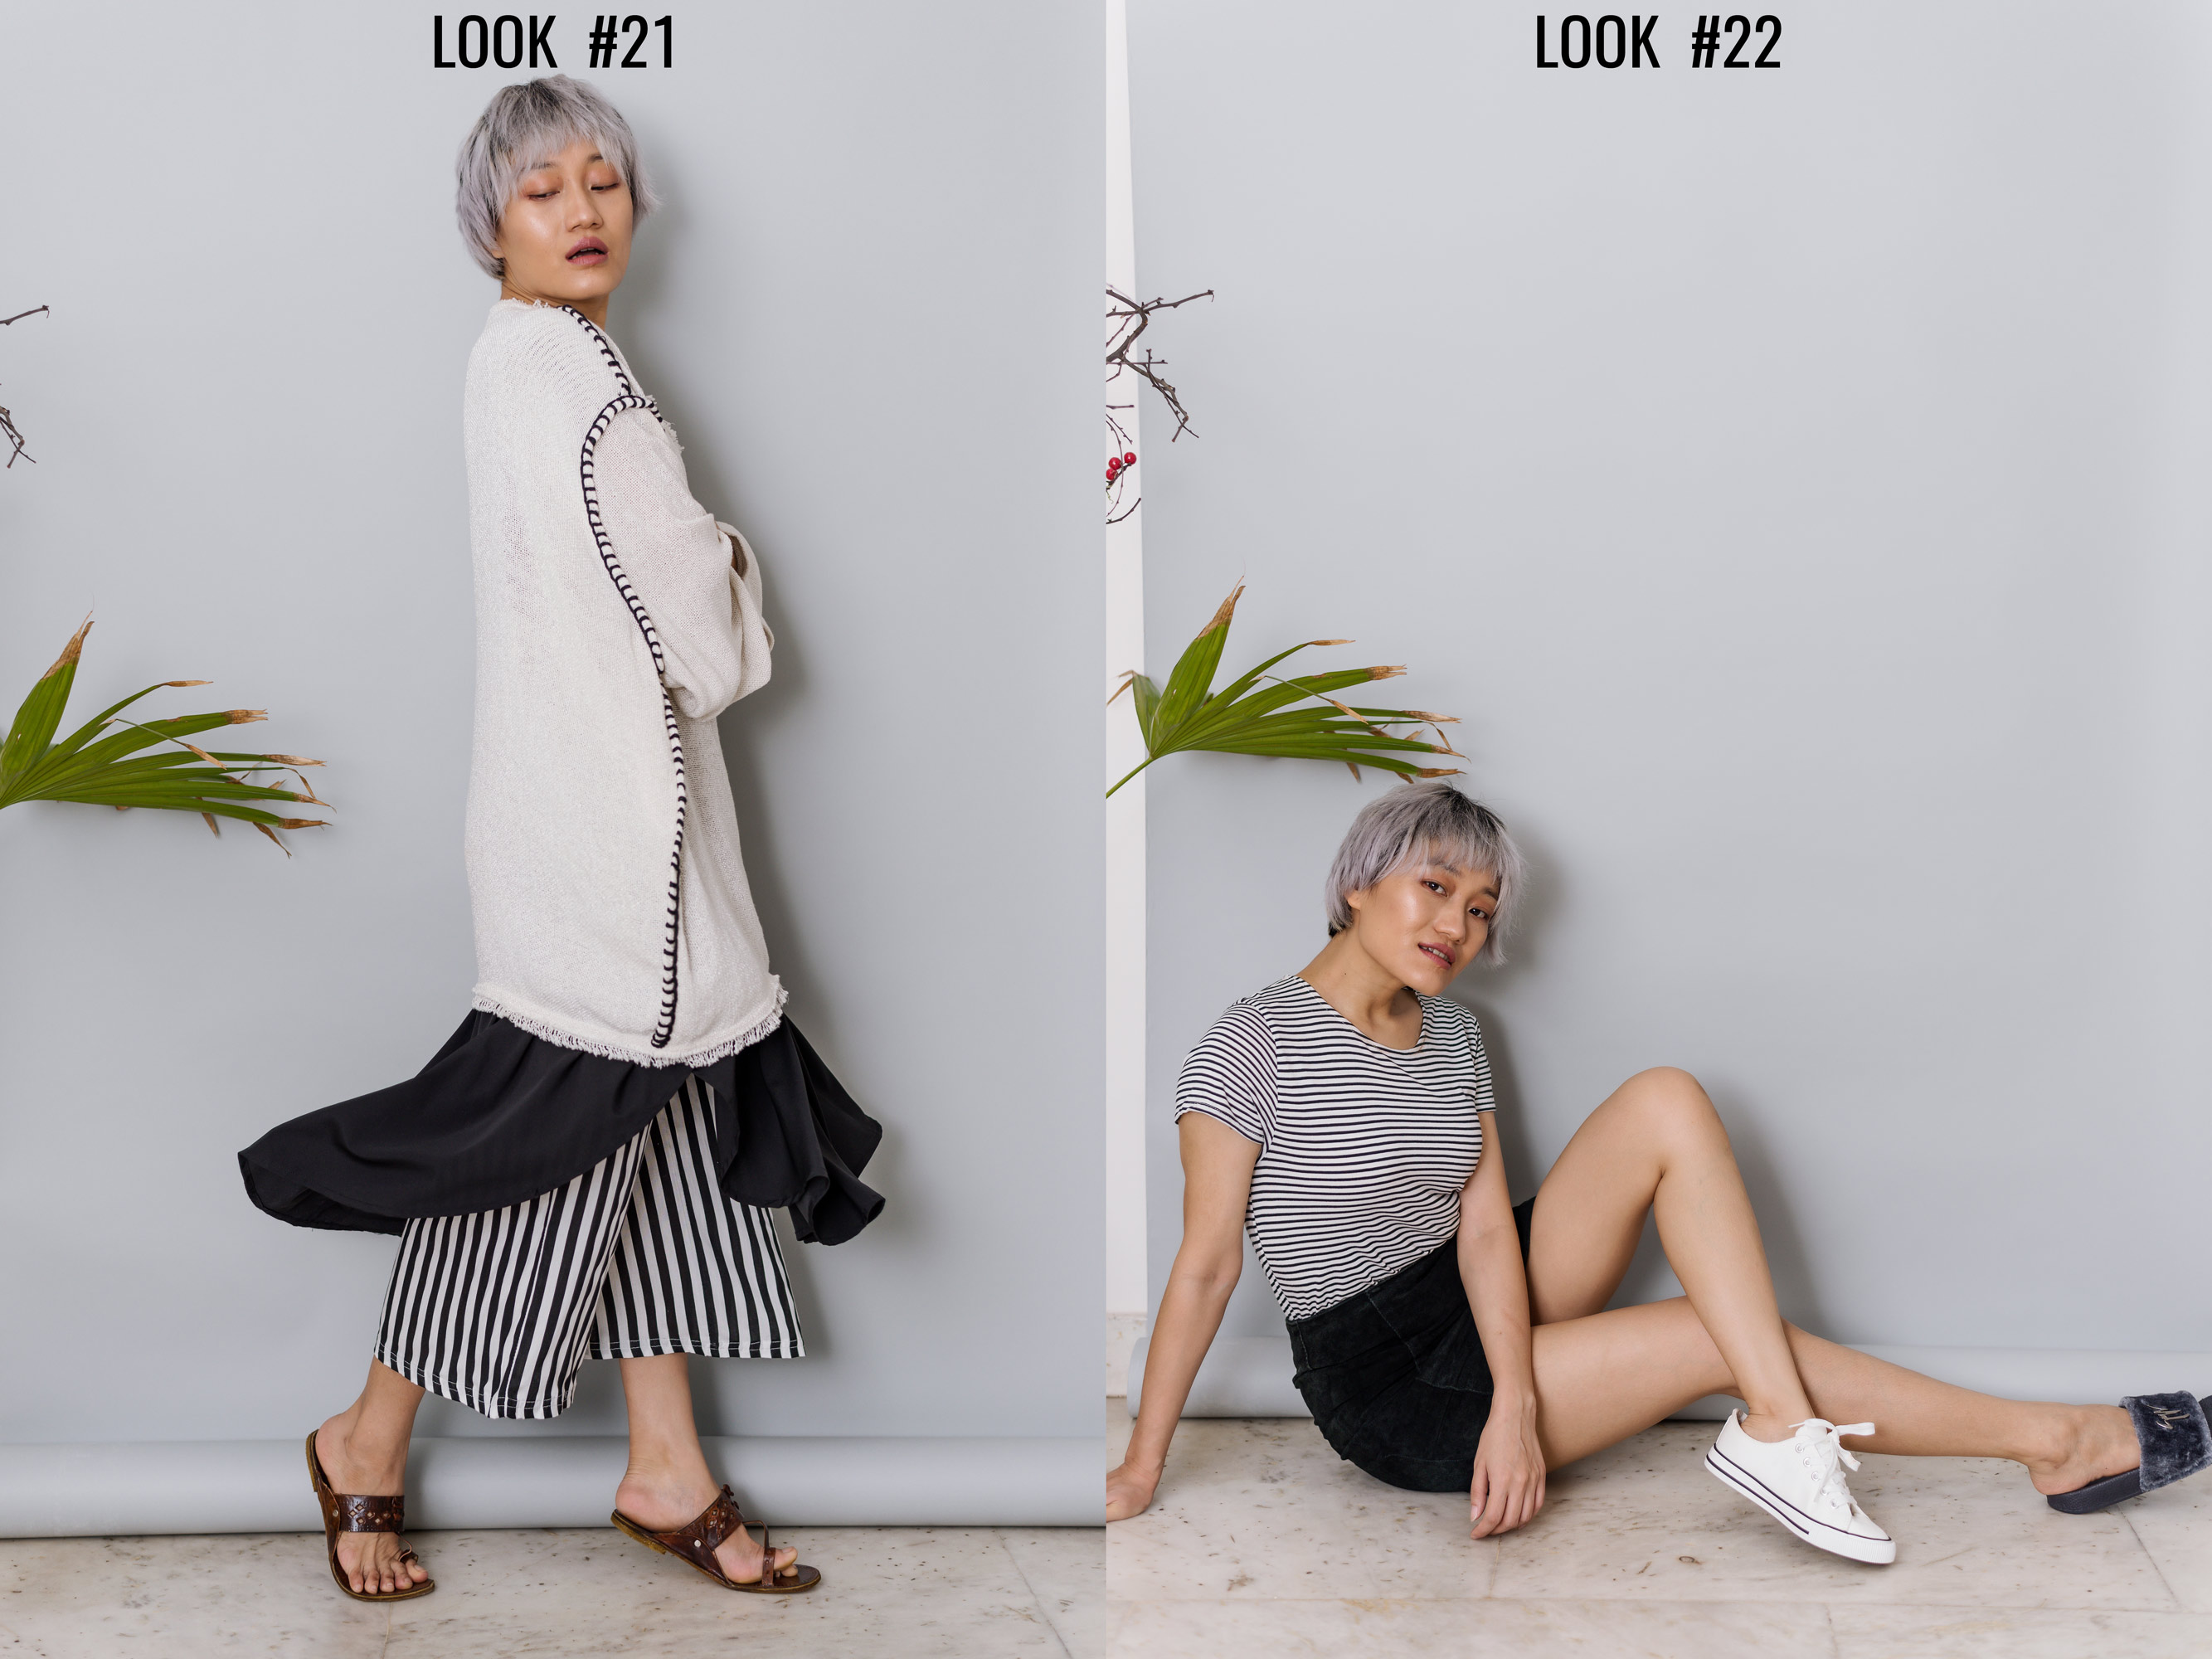 Aien-Jamir-Fashion-&-I-31-Looks-21&22